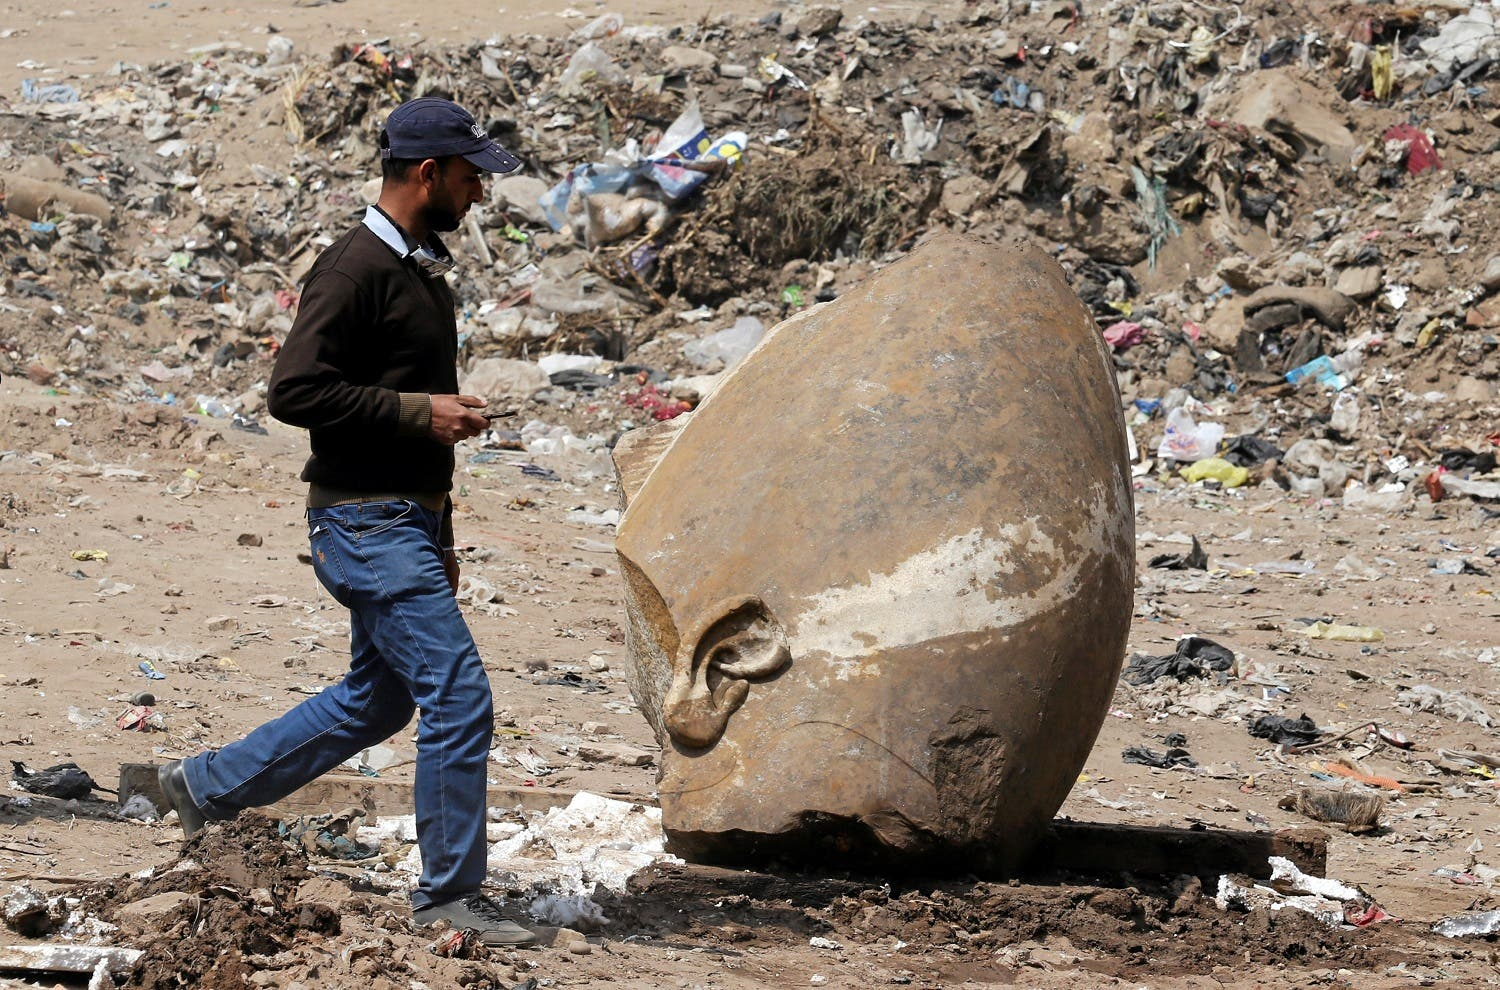 Egypt to complete Ramses II excavation 'using safe techniques'  reuters